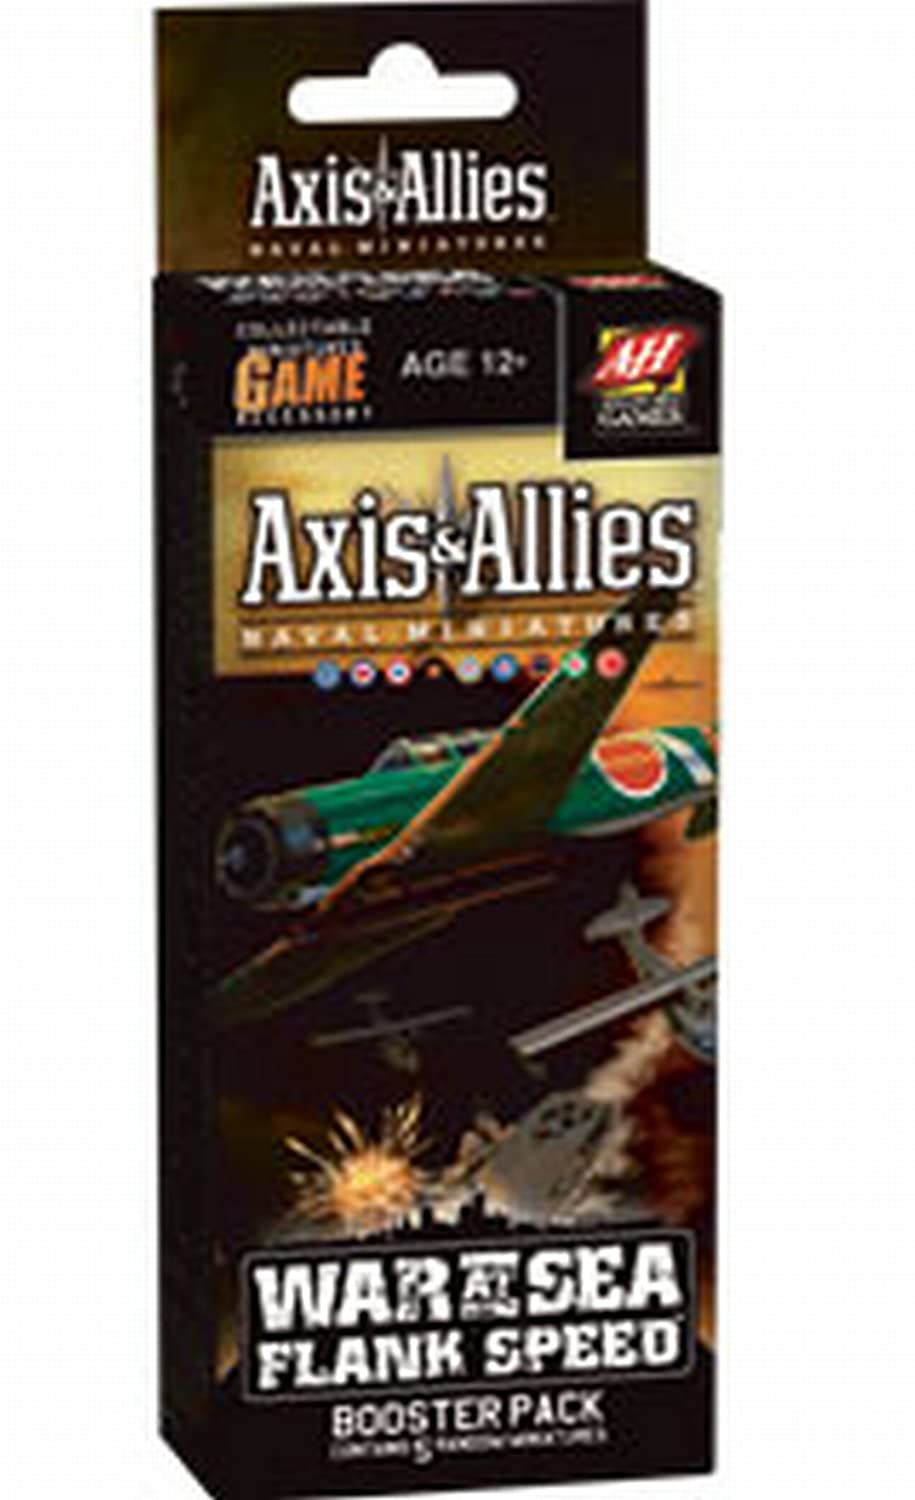 Wizards of the Coast Axis and Allies Naval Miniatures War at Sea Flank Speed Booster Pack Board Game Expansion